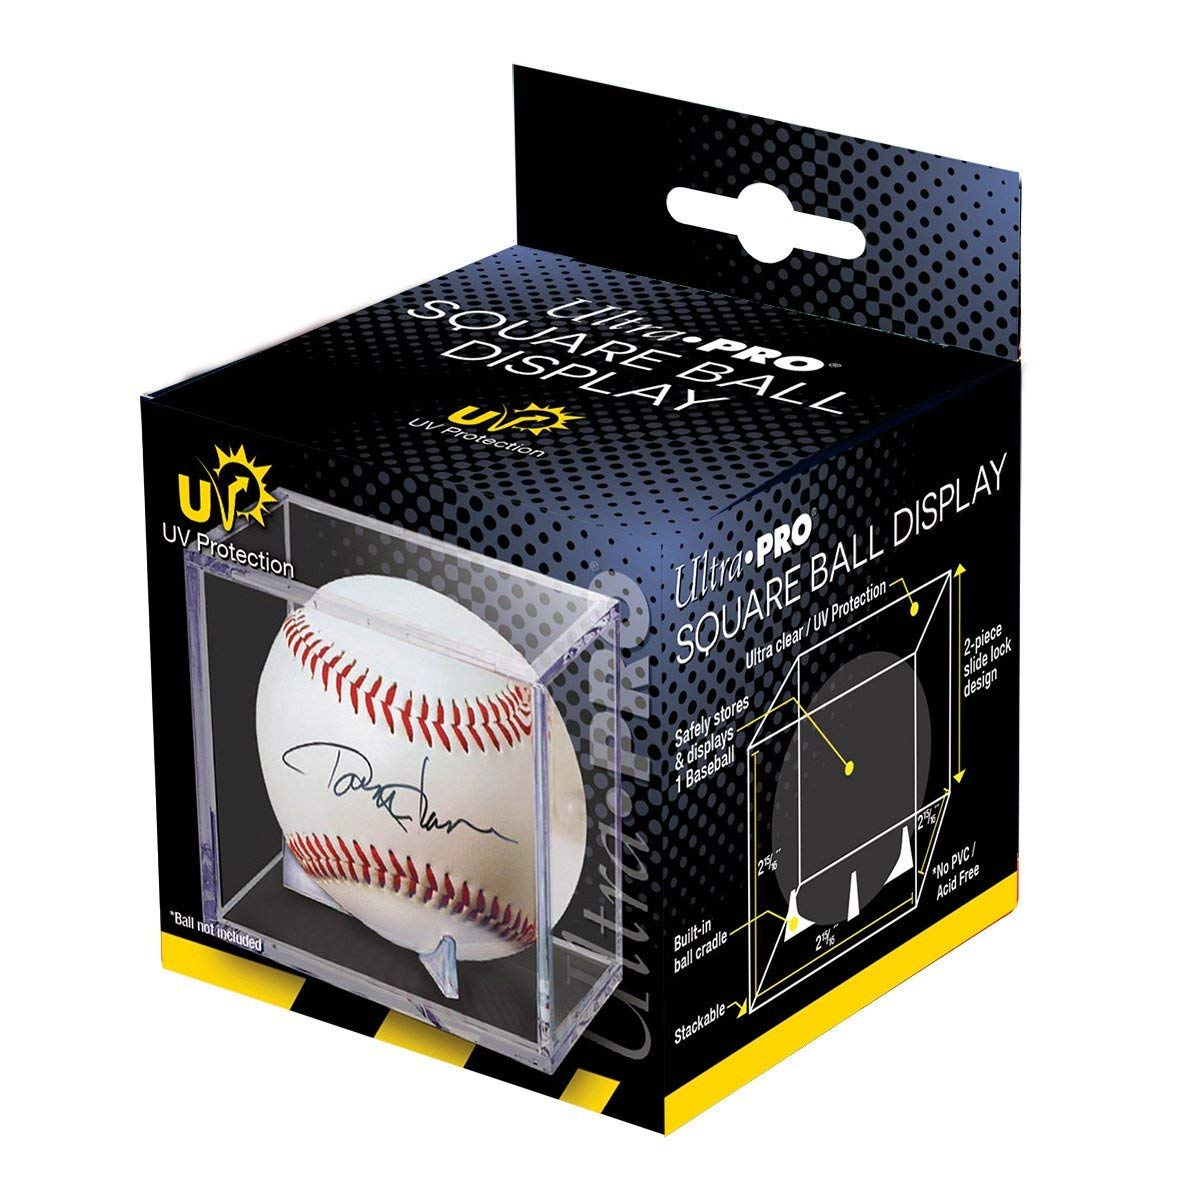 Ultra Pro Square Ball Display Box Ultra Clear with Built-In Ball Cradle and UV Protection (1-Unit)